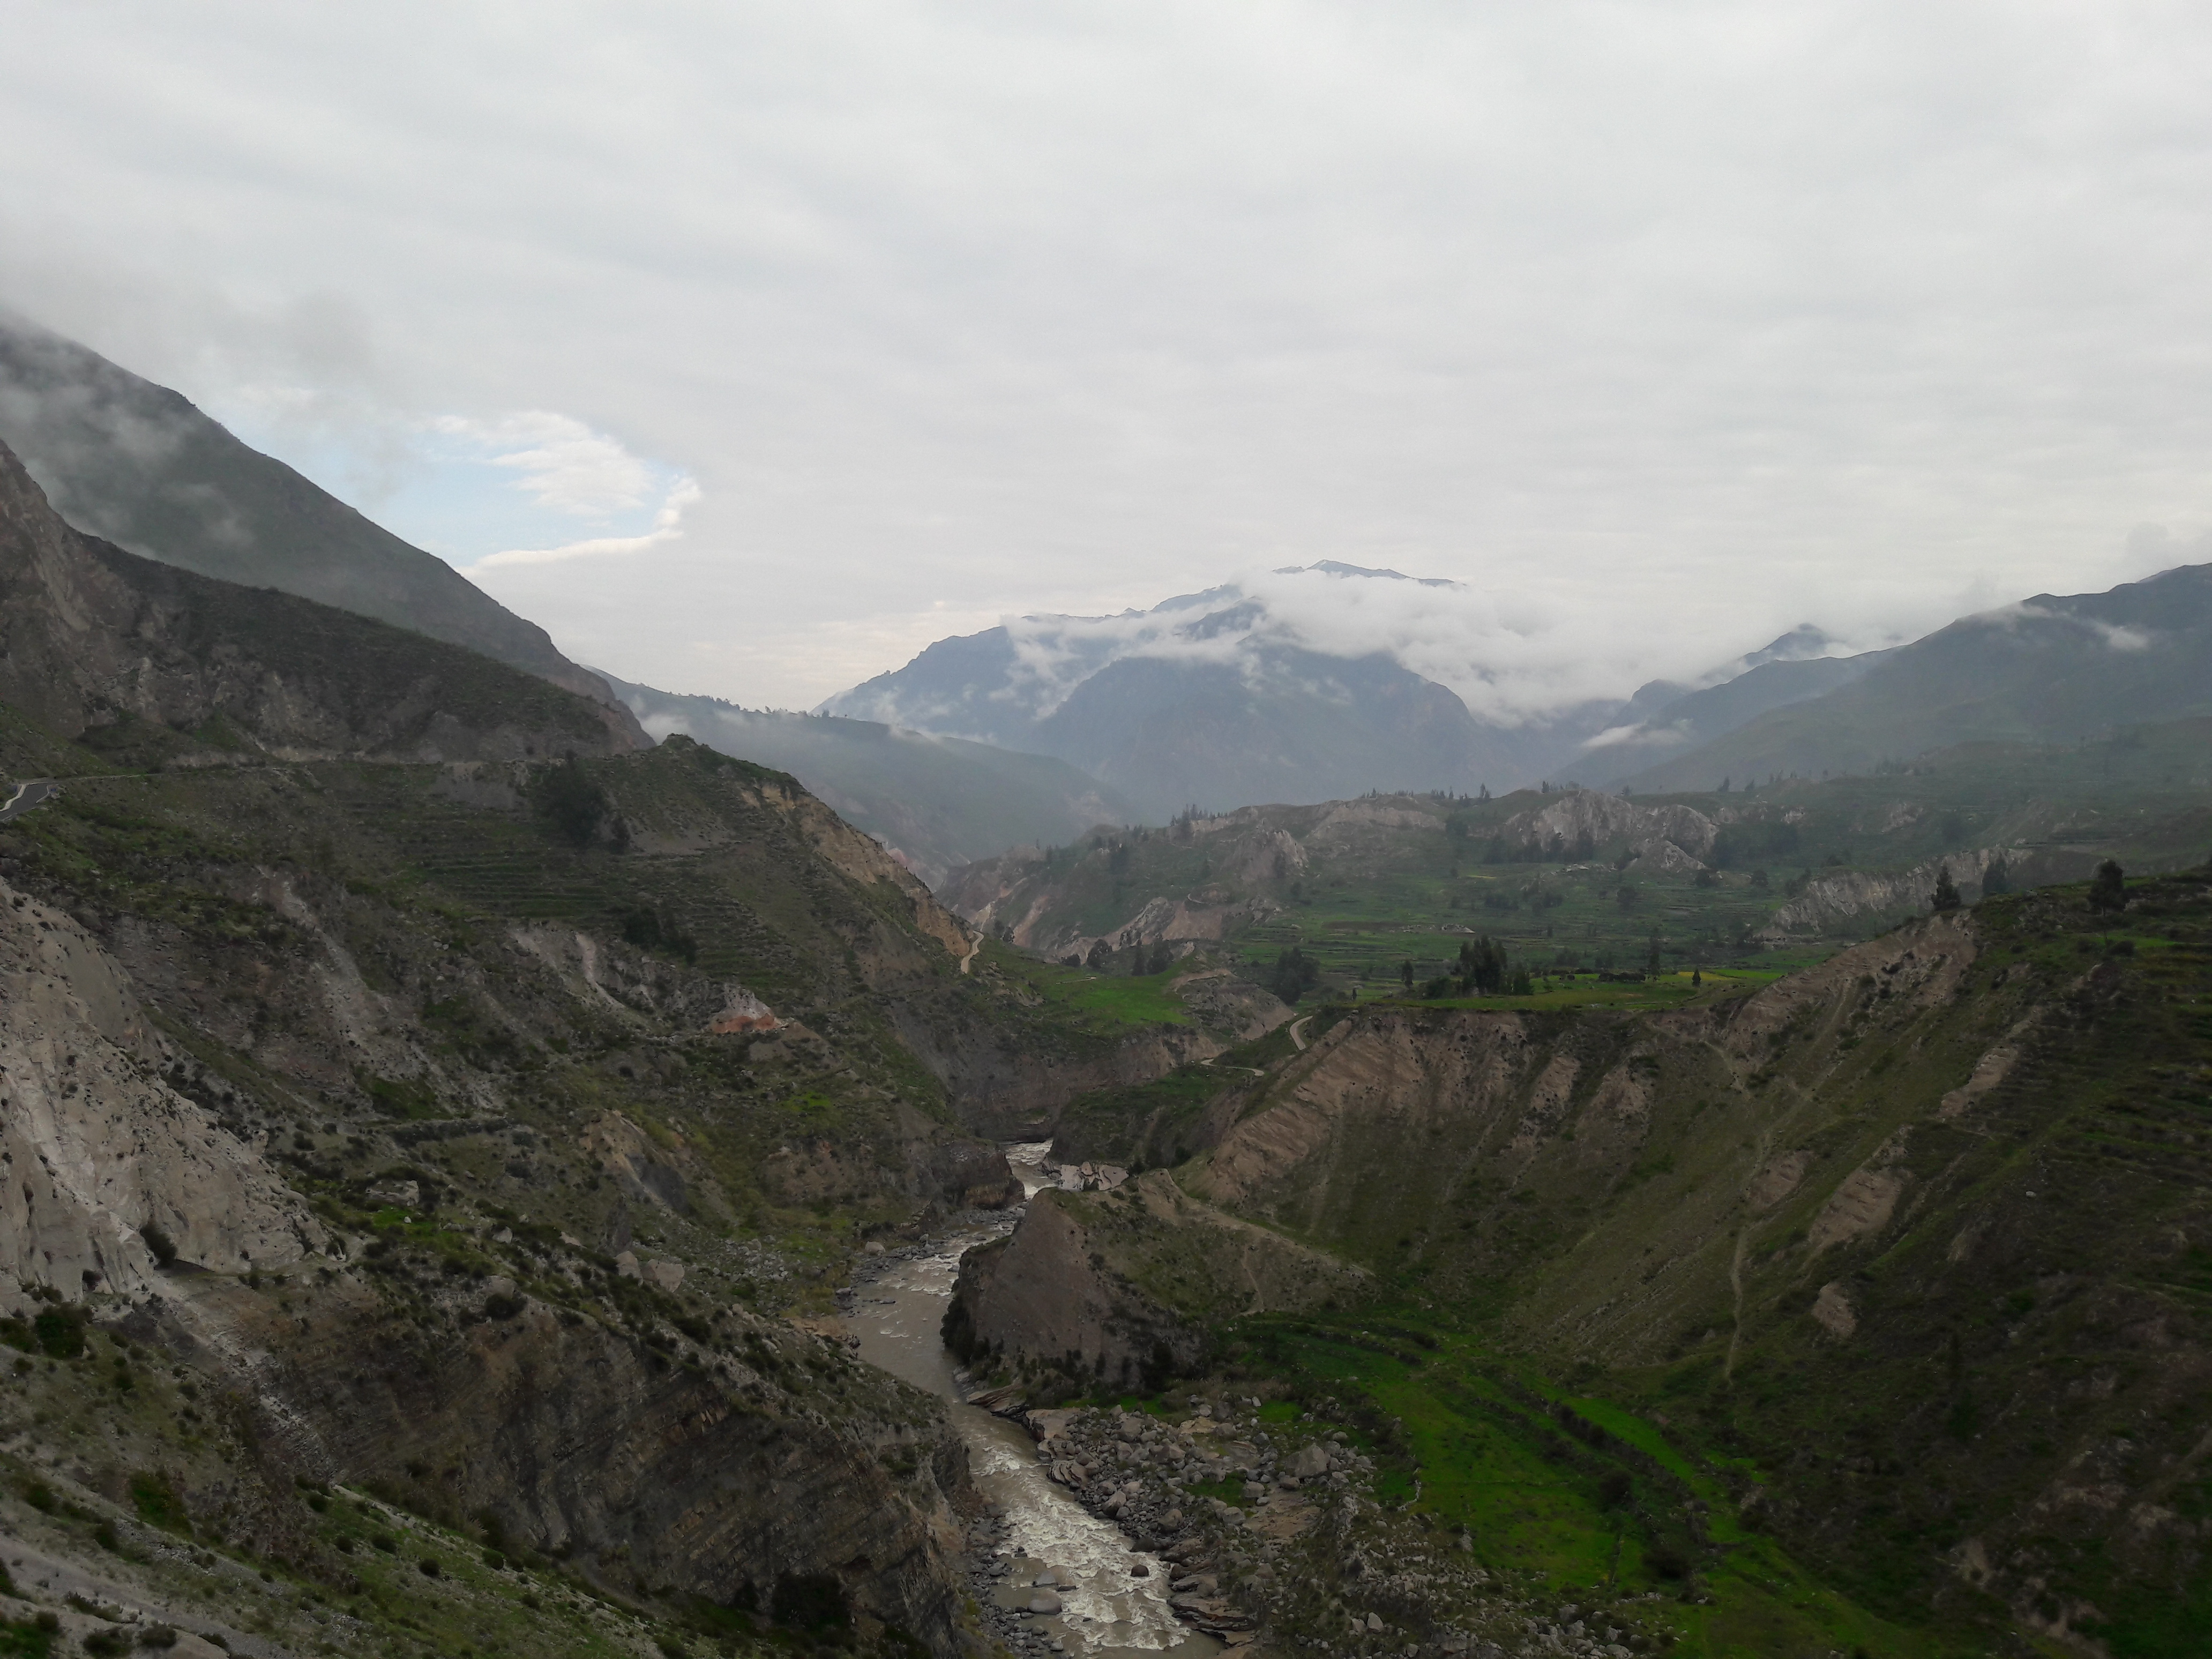 A valley with a river and a cloudy sky